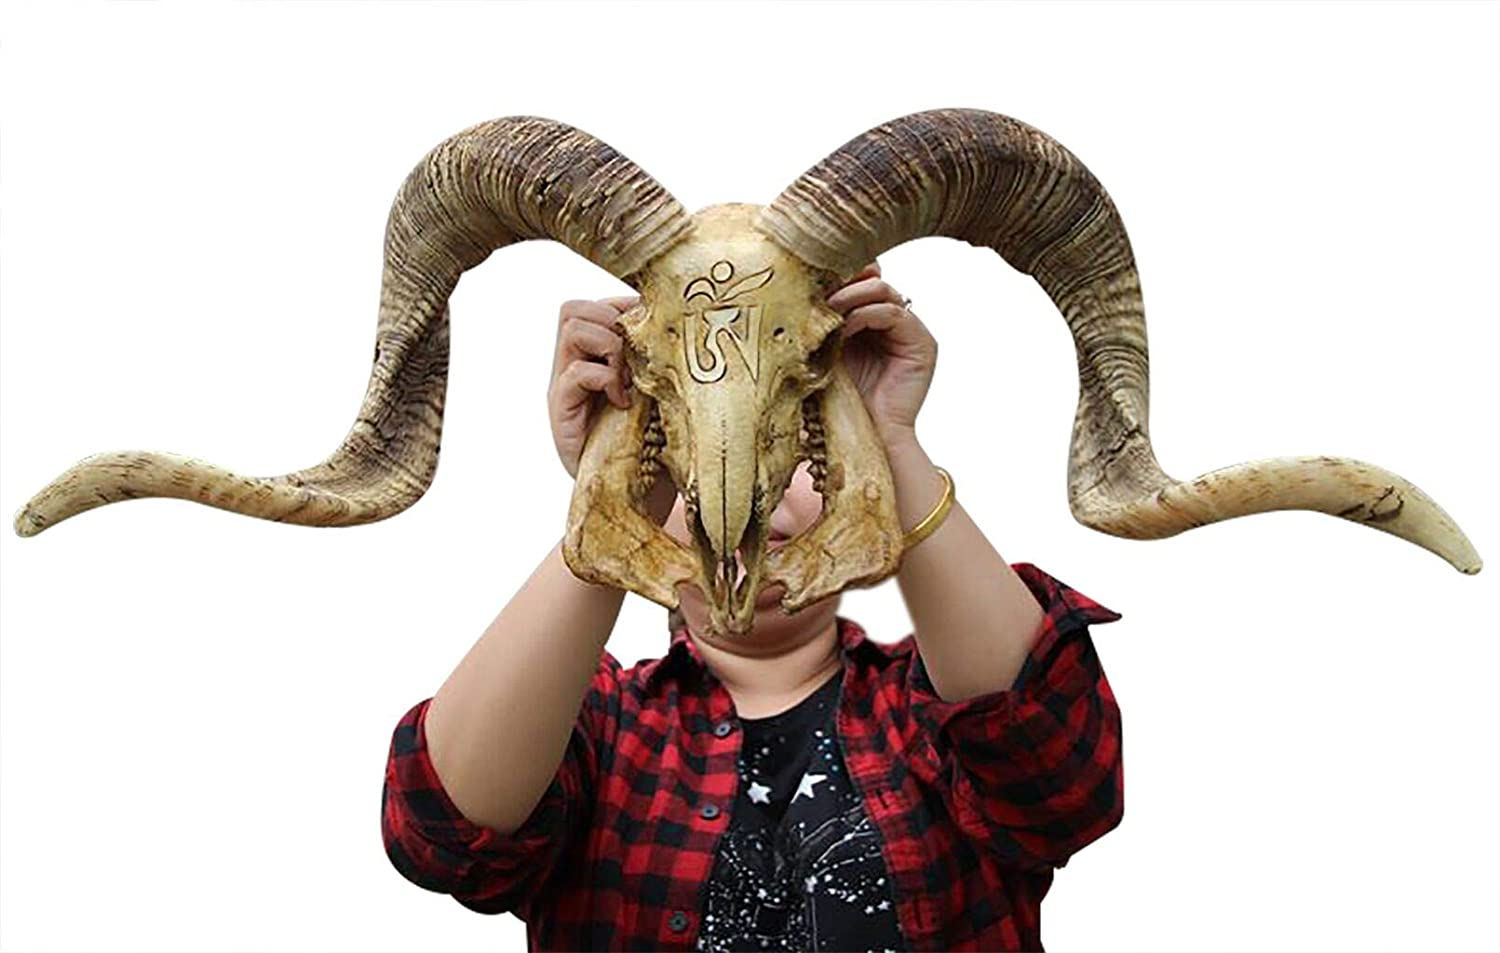 Natural Sheep Skull Head Wall Decor Ram Skull Wall Hanging and Longhorn Steer Authentic Ram Skull with Horns Handmade Carved Ram Head Skull Large Curled Horns - Home Decor, Collectible (Gold)